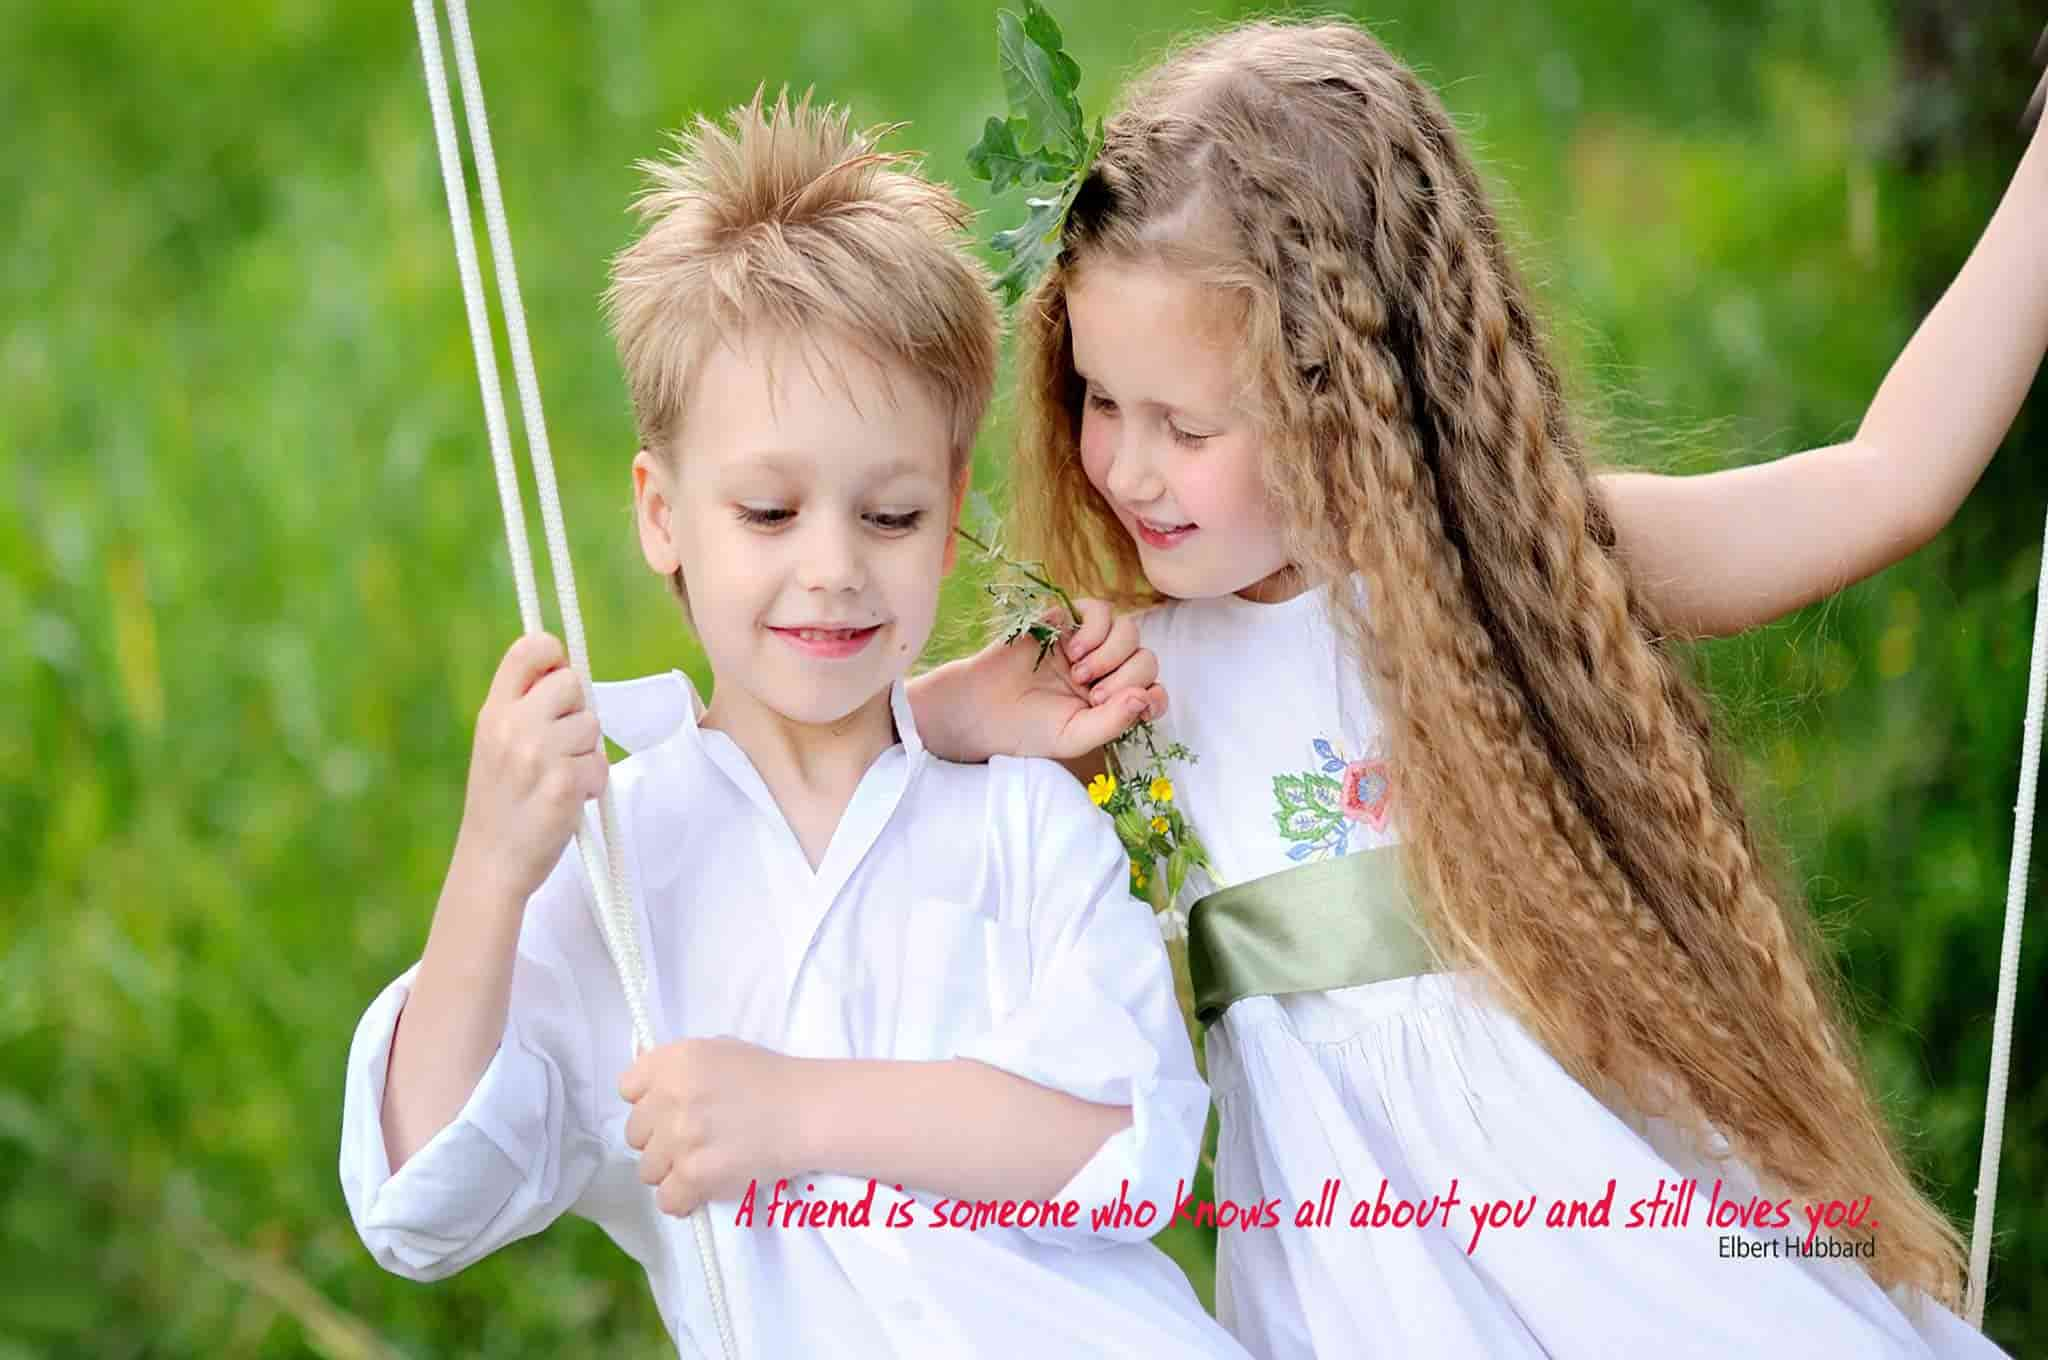 happy friendship day 2017 images for kids